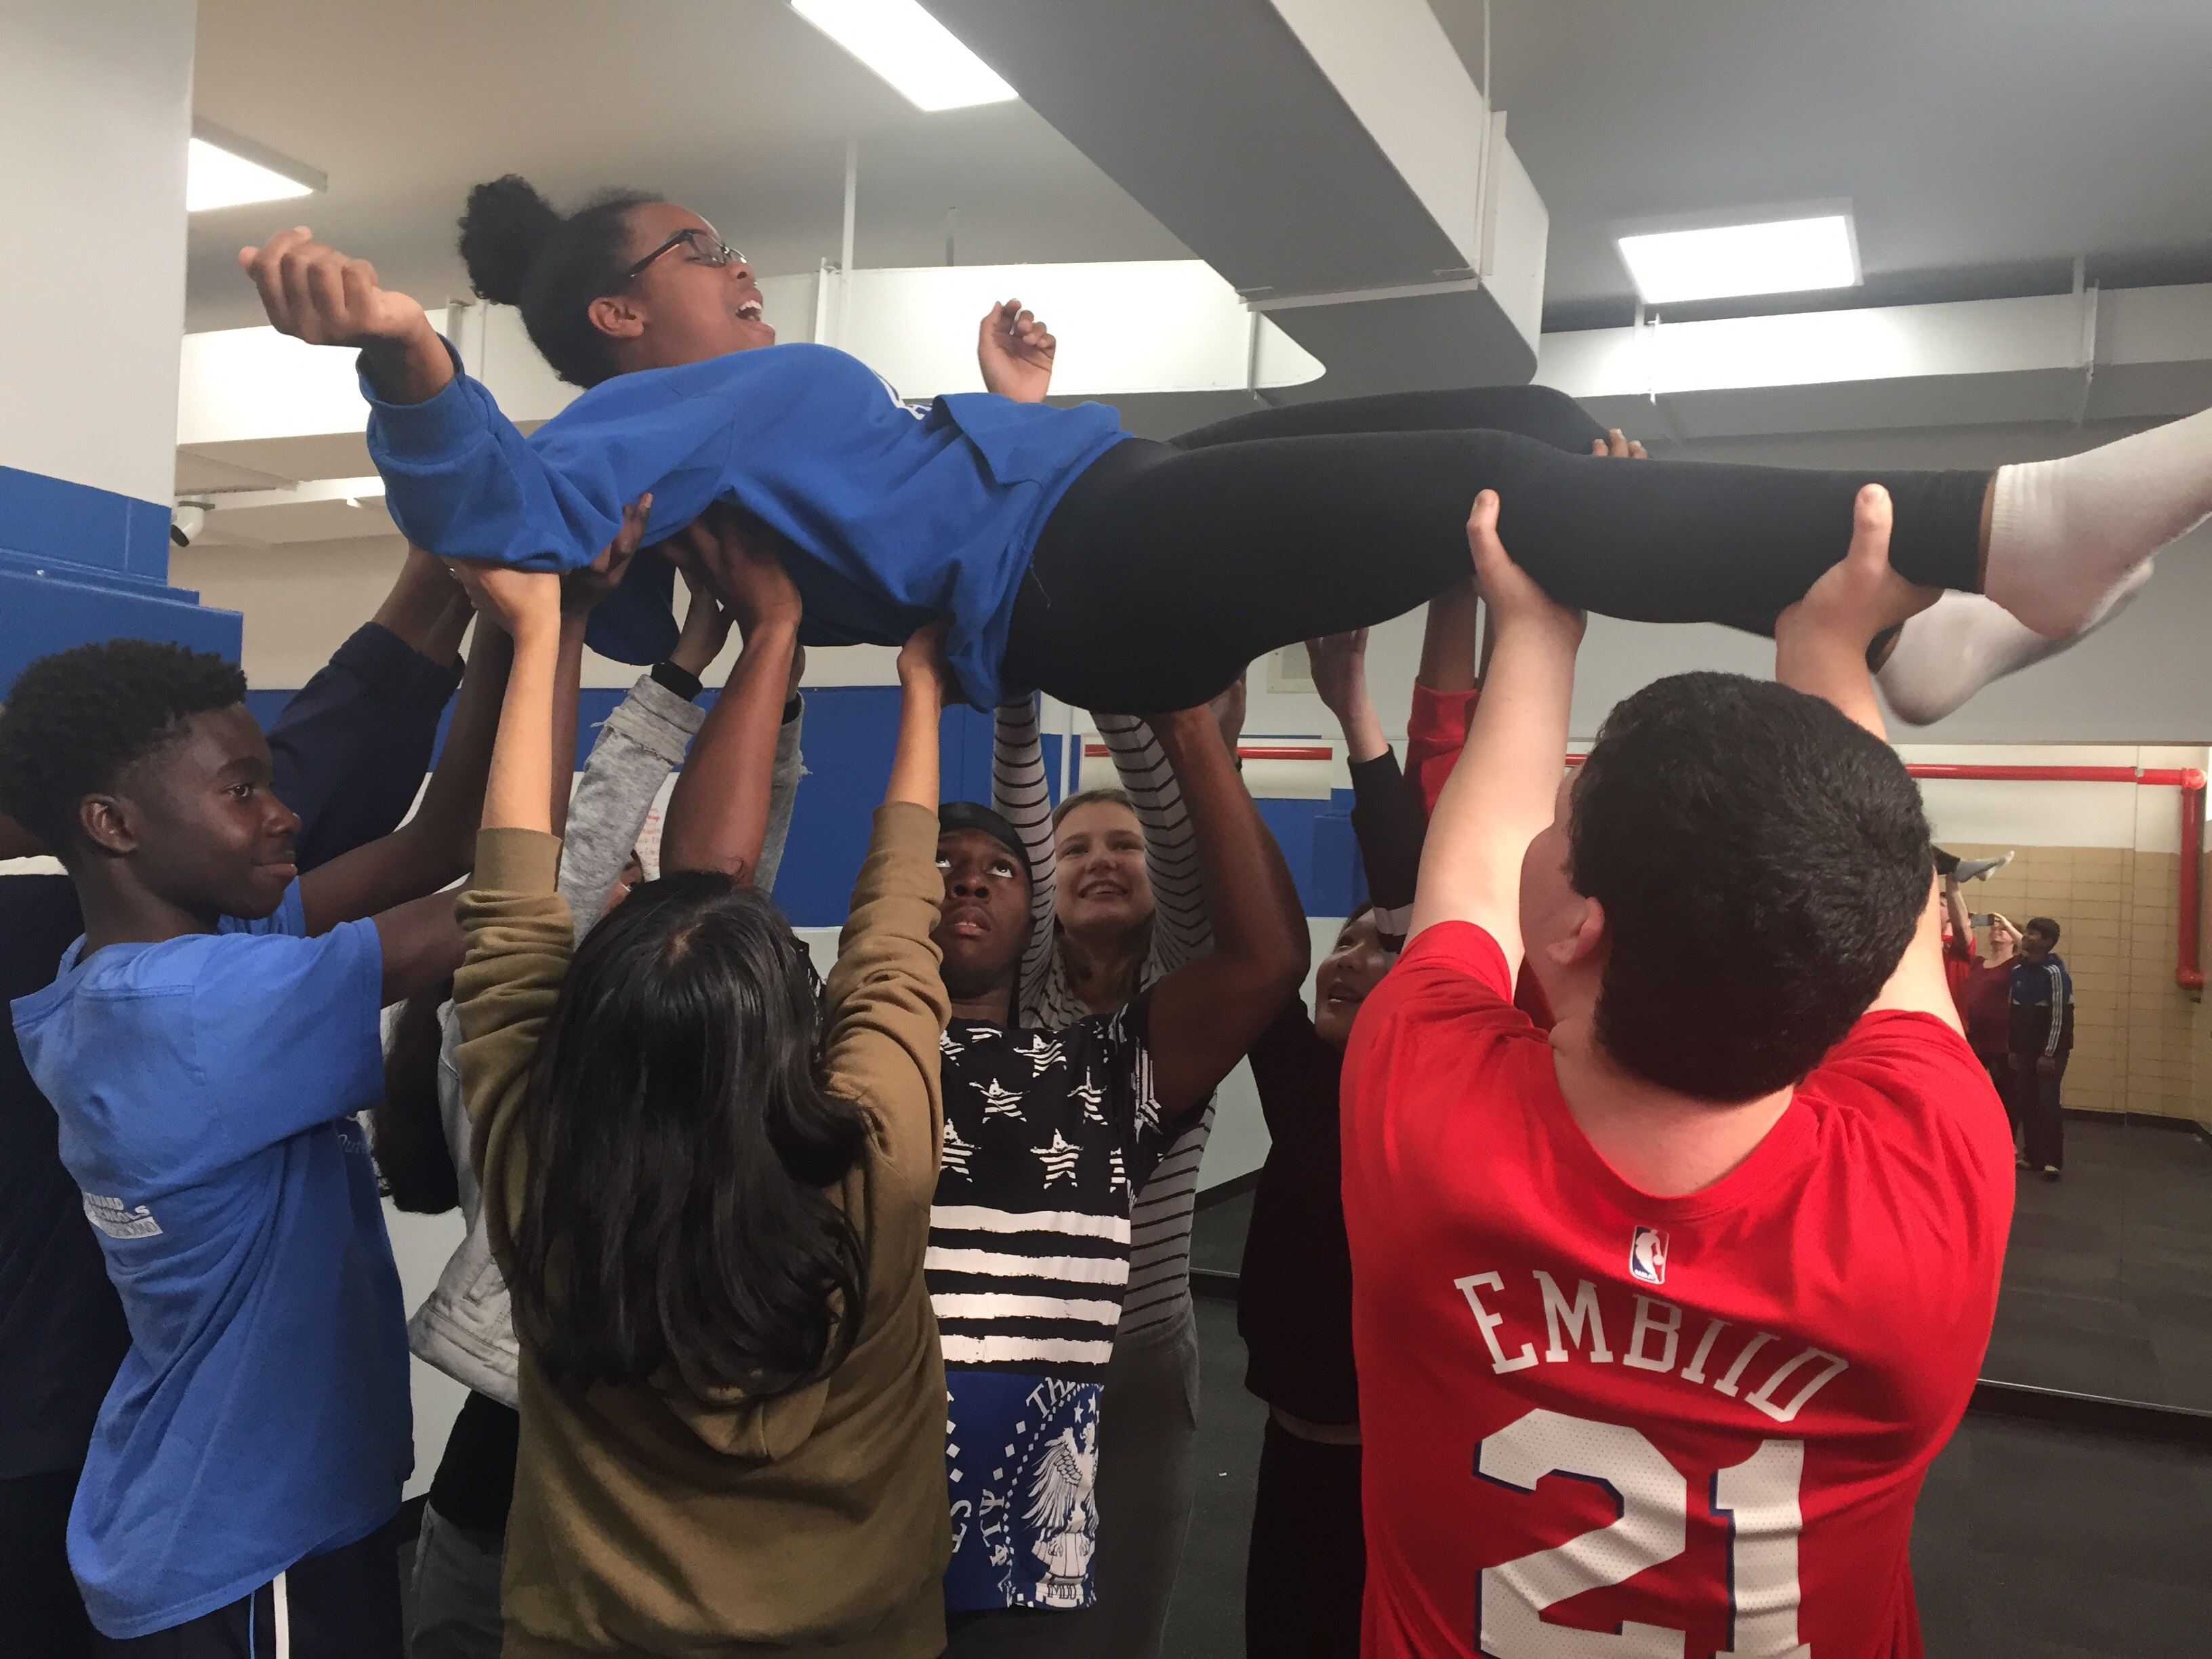 Students lifting up another student